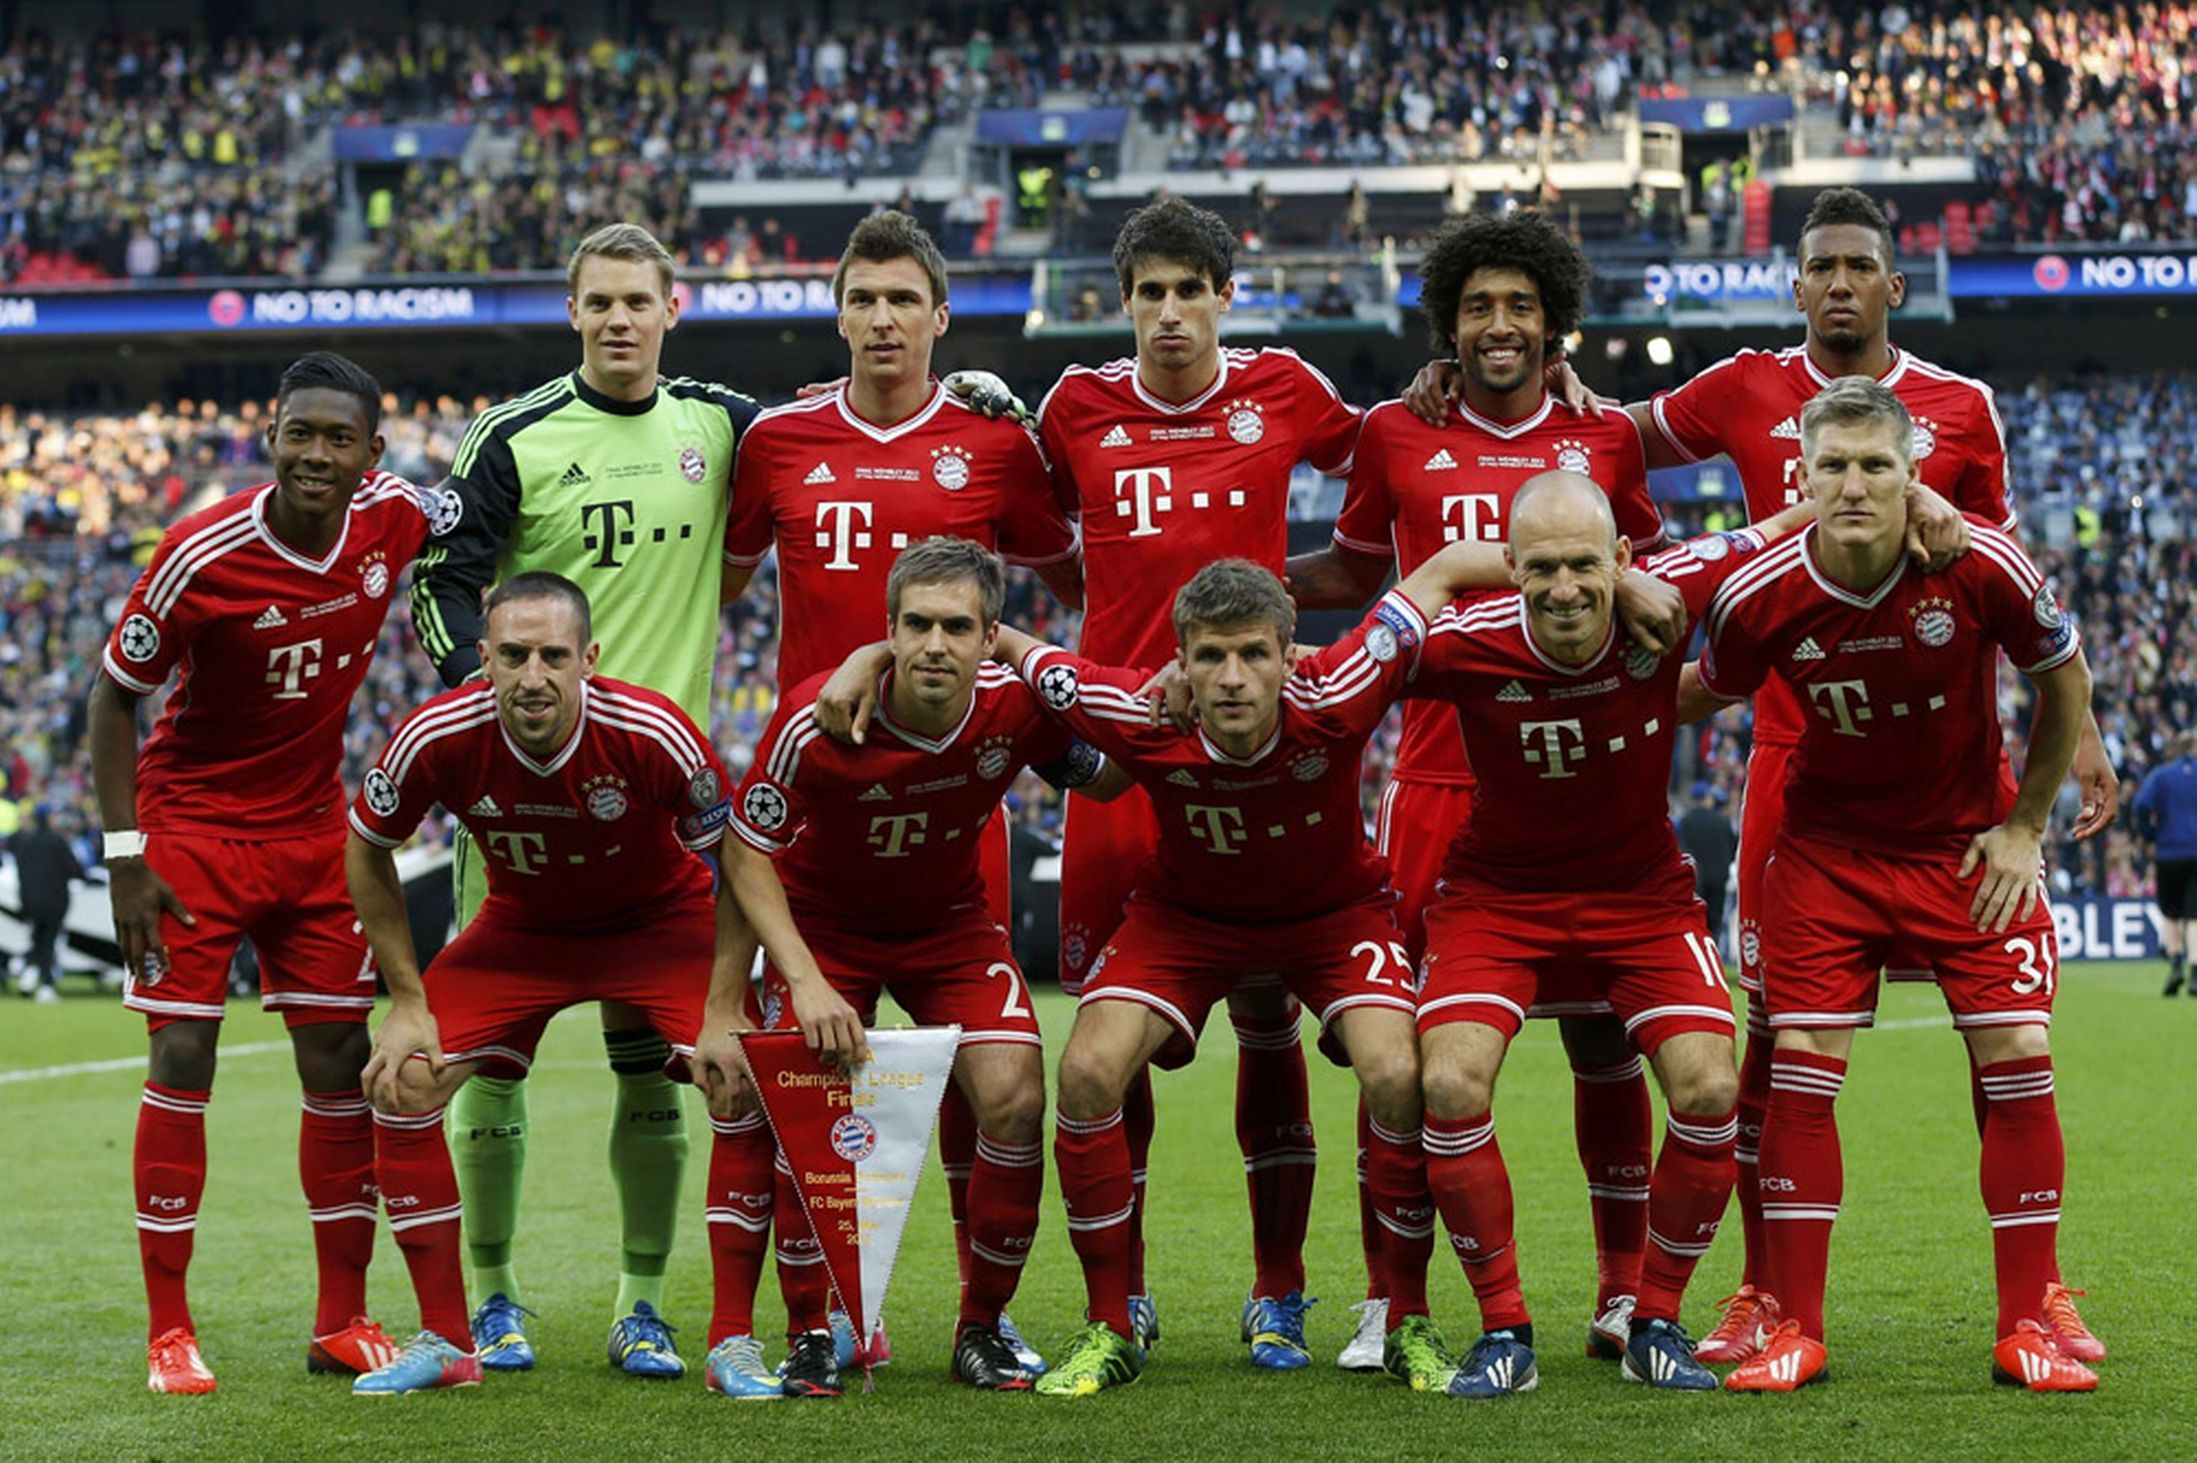 Picture Special The 100 Best Photos From Bayern Munich S Champions